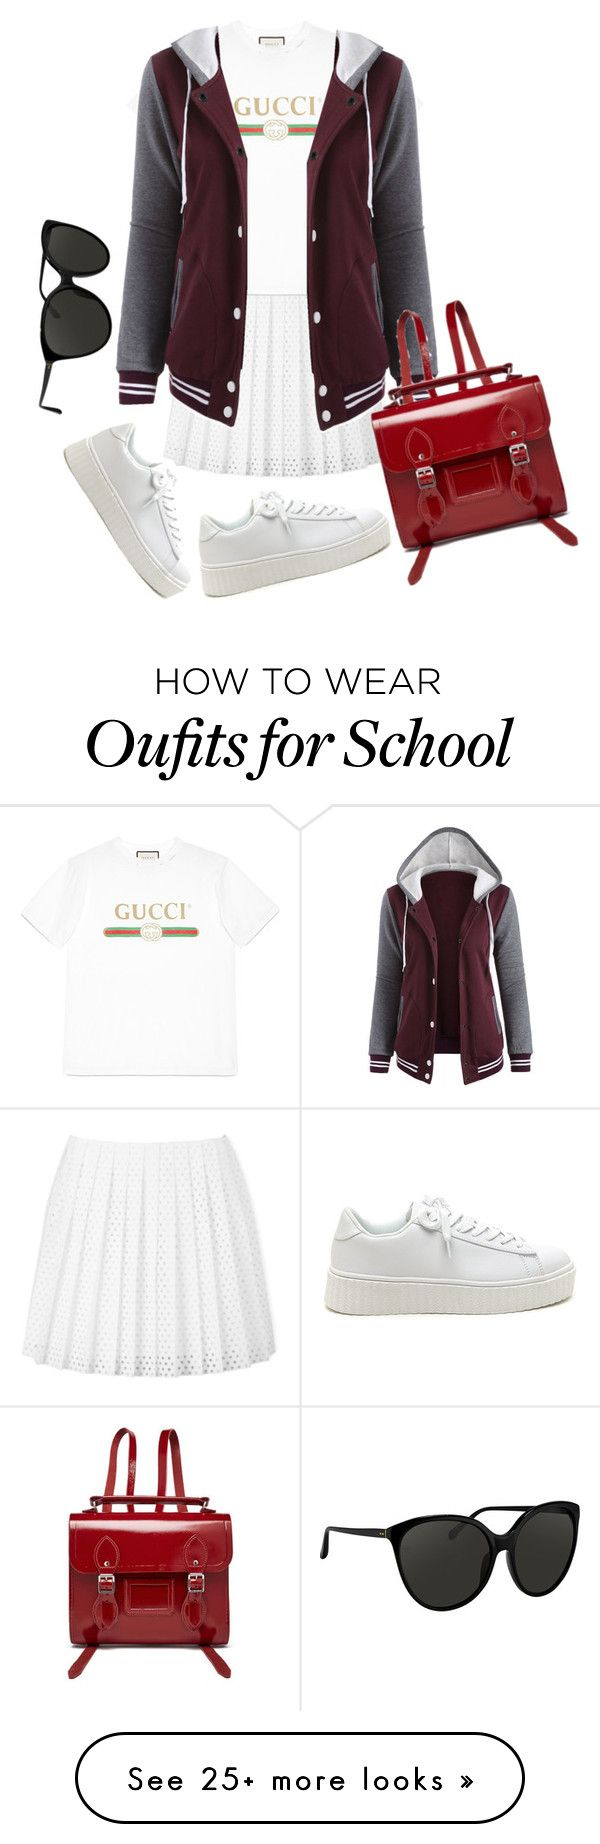 """Old School"" by beatricewolf on Polyvore featuring McQ by Alexander McQueen, Gucci, The Cambridge Satchel Company and Linda Farrow"